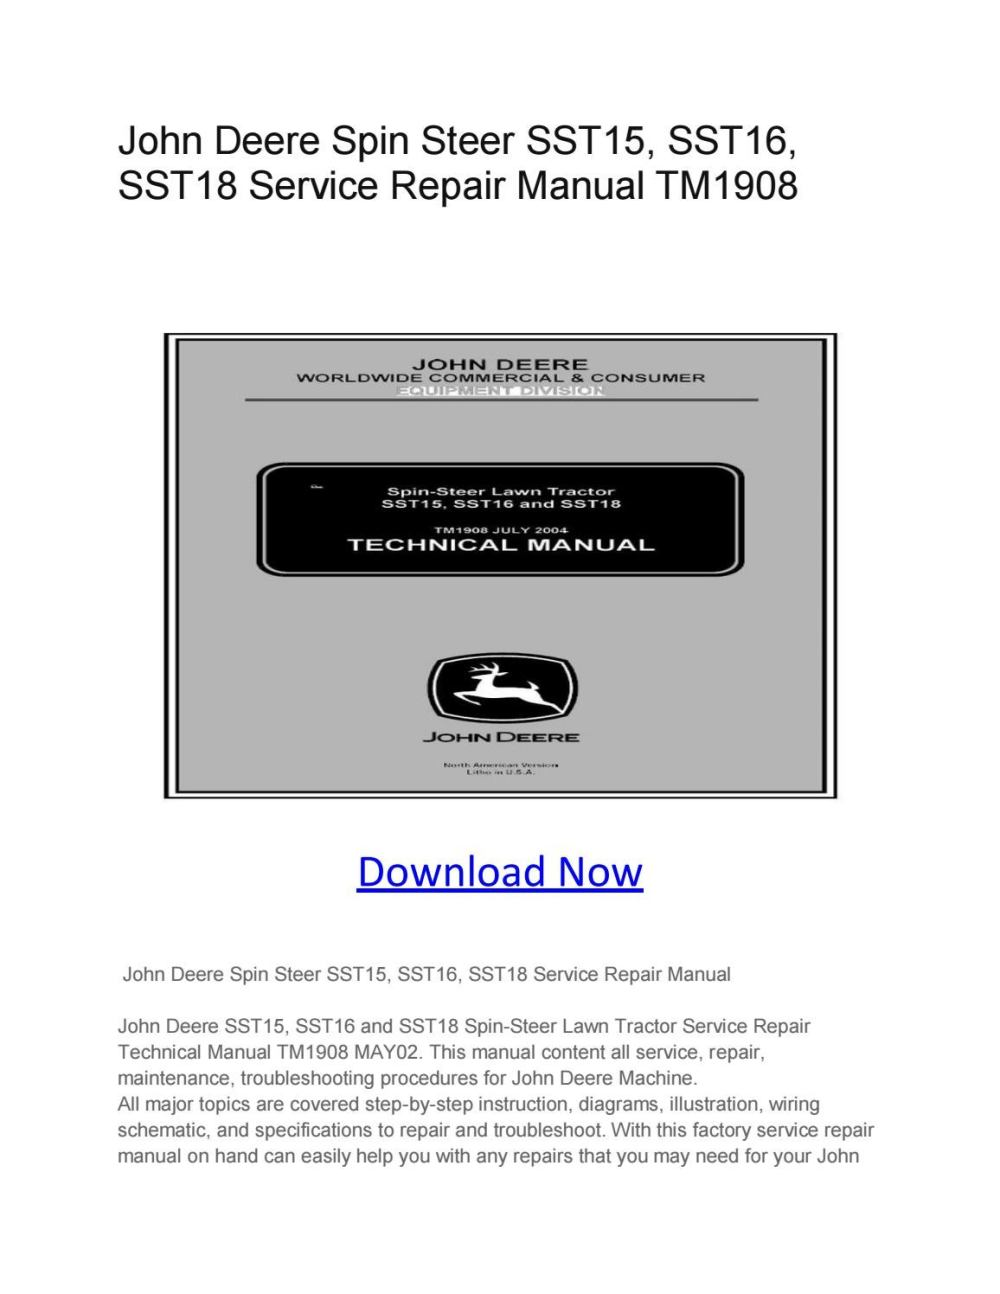 medium resolution of john deere spin steer sst15 sst16 sst18 service repair manual tm1908 by larry sprouse issuu